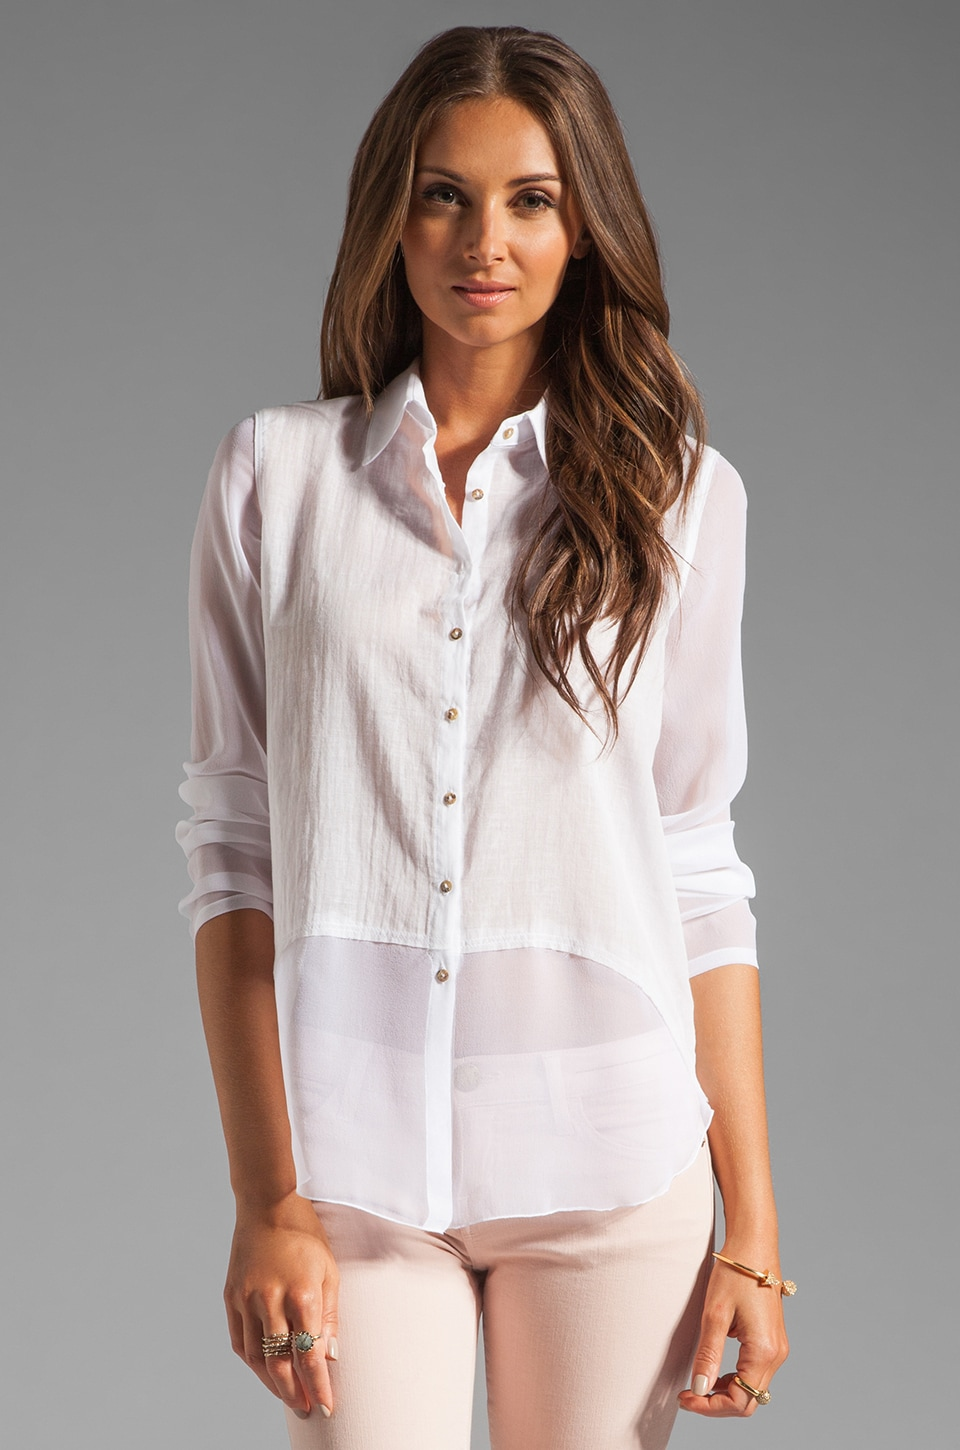 Bailey 44 Skeet Shooting Shirt in White